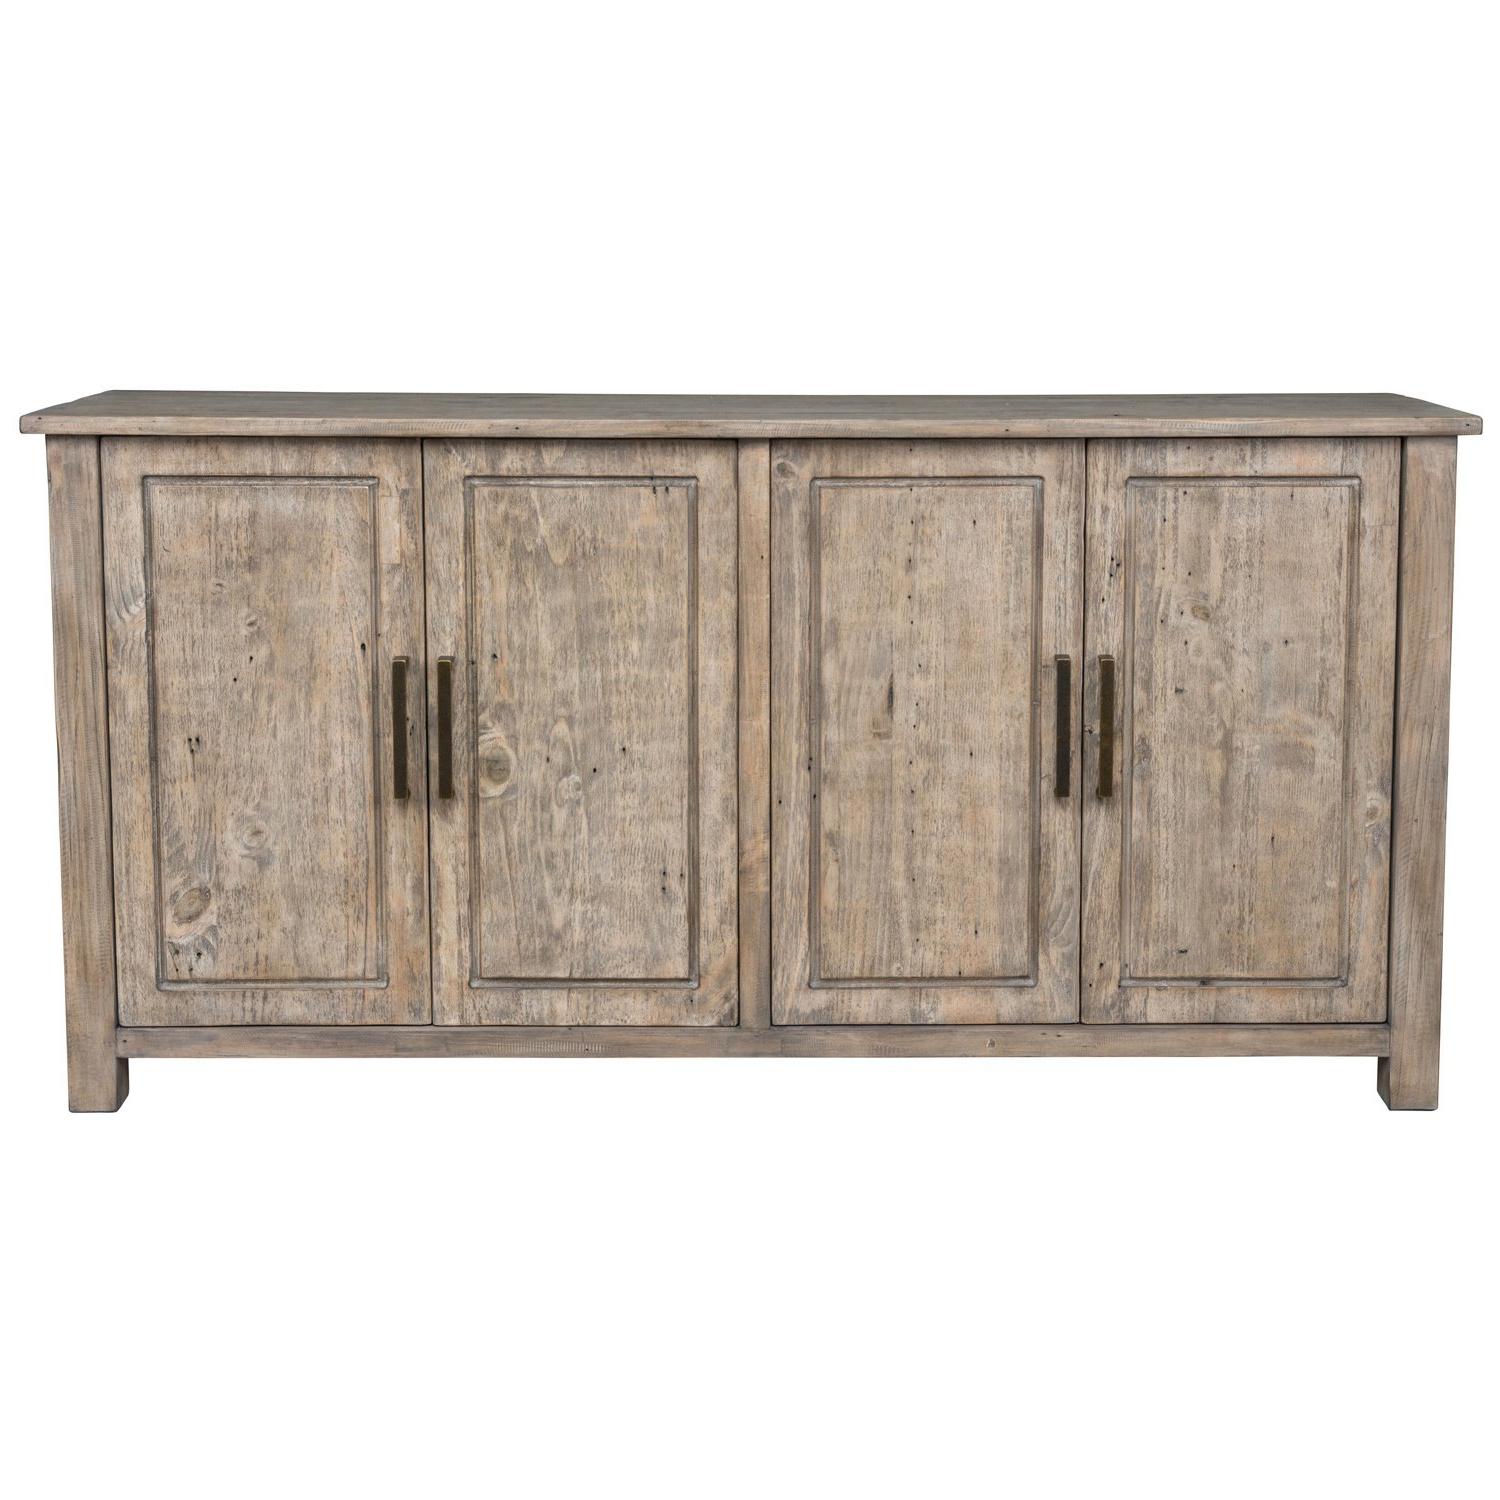 Newest Reclaimed Pine & Iron 72 Inch Sideboards Within Shop Aires Reclaimed Wood 72 Inch Sideboardkosas Home – Free (Gallery 2 of 20)